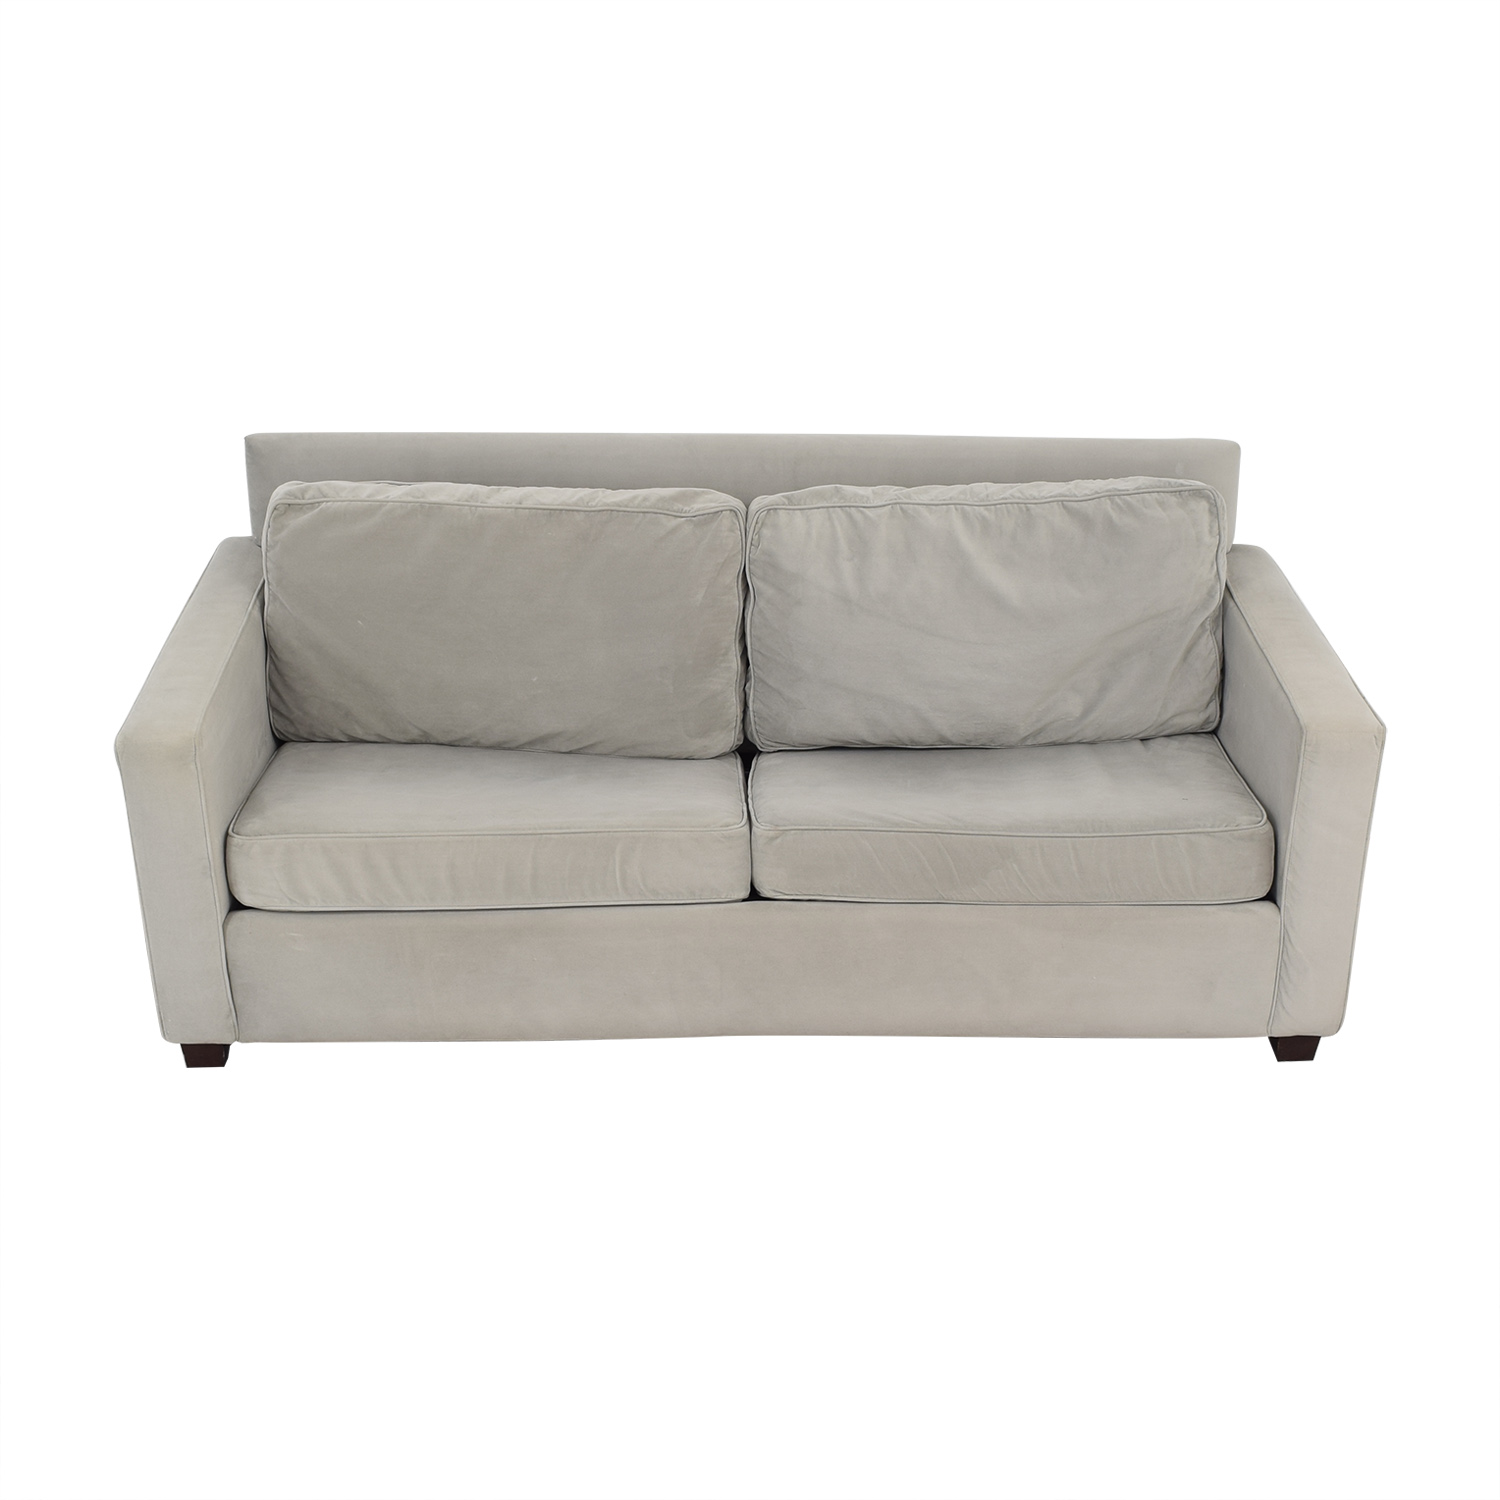 West Elm West Elm Henry Basic Queen Sleeper Sofa nj